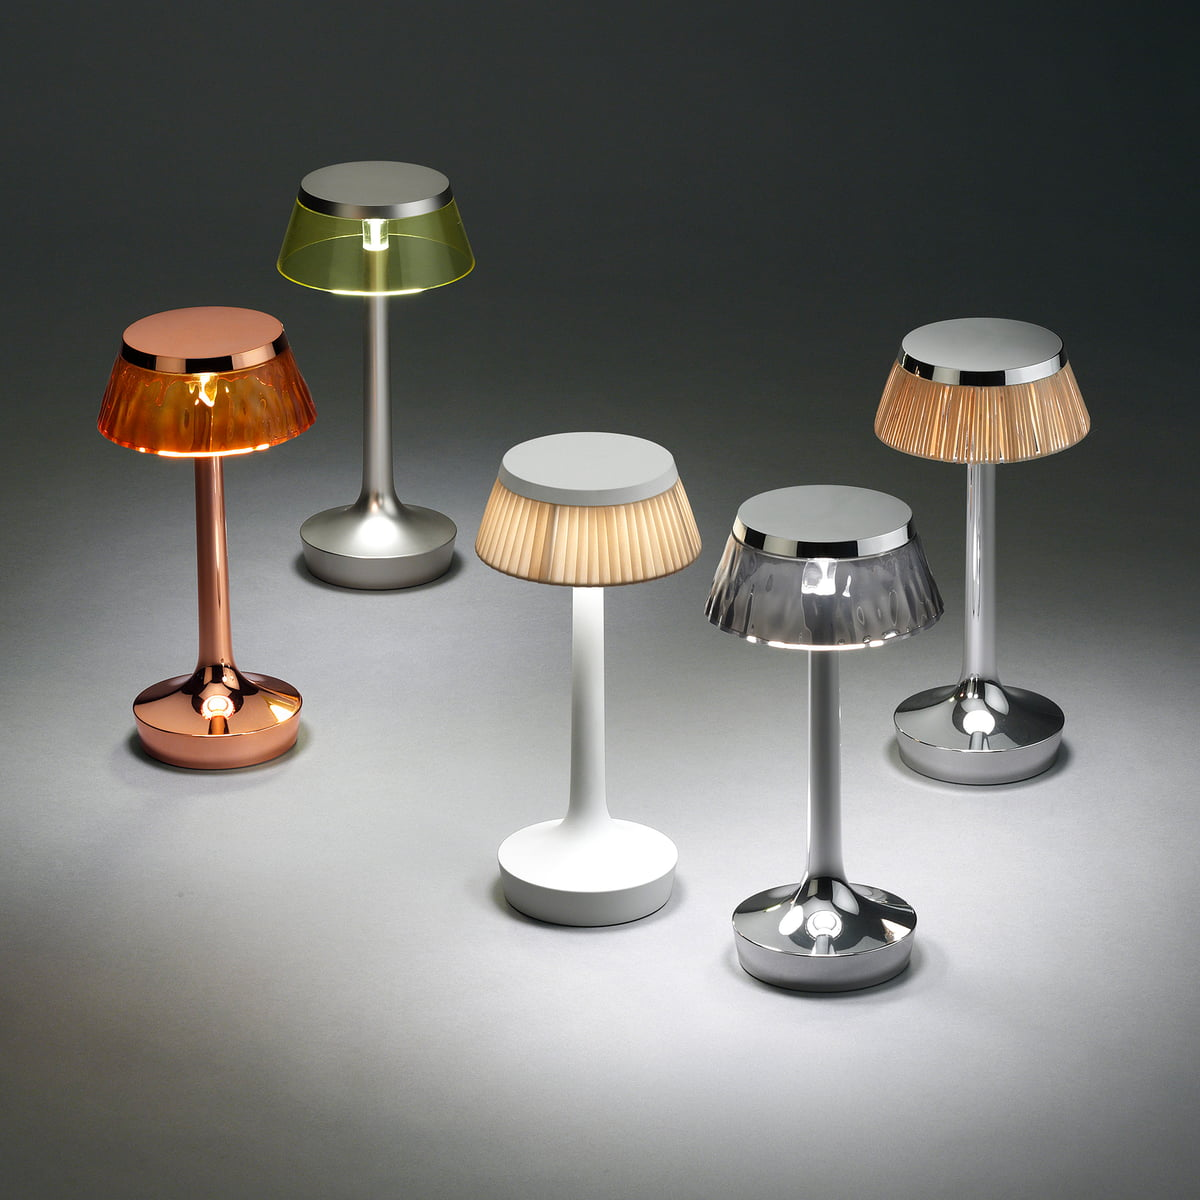 Bon jour Unplugged Table Lamp by Flos